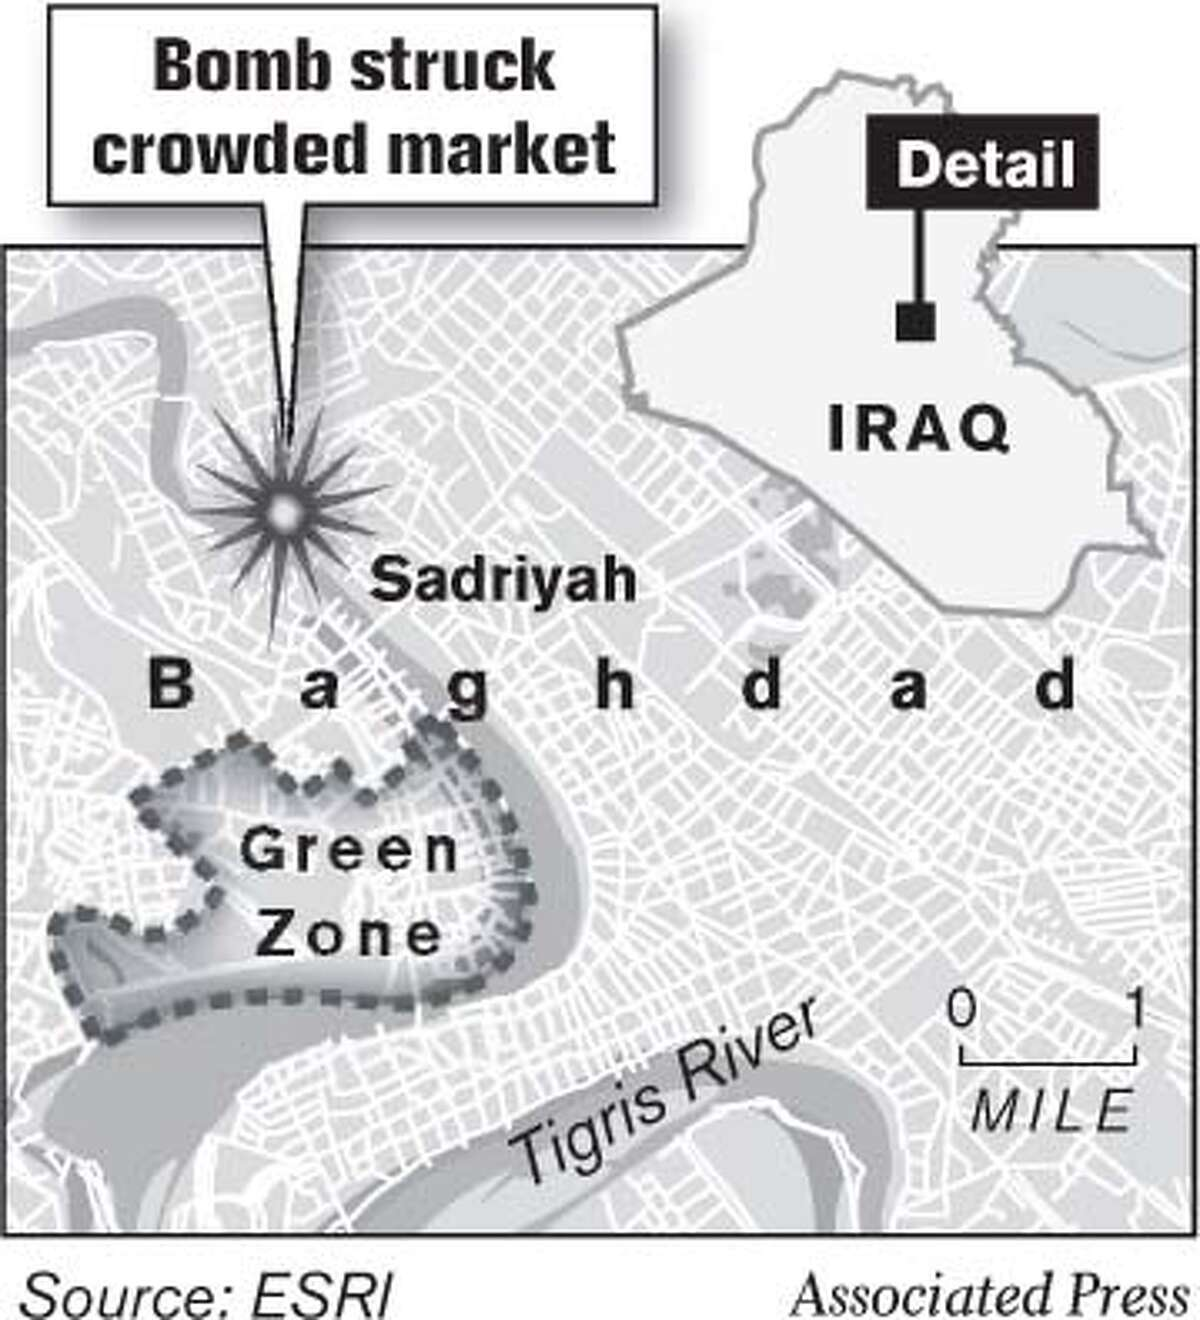 Bomb struck crowded market. Associated Press Graphic